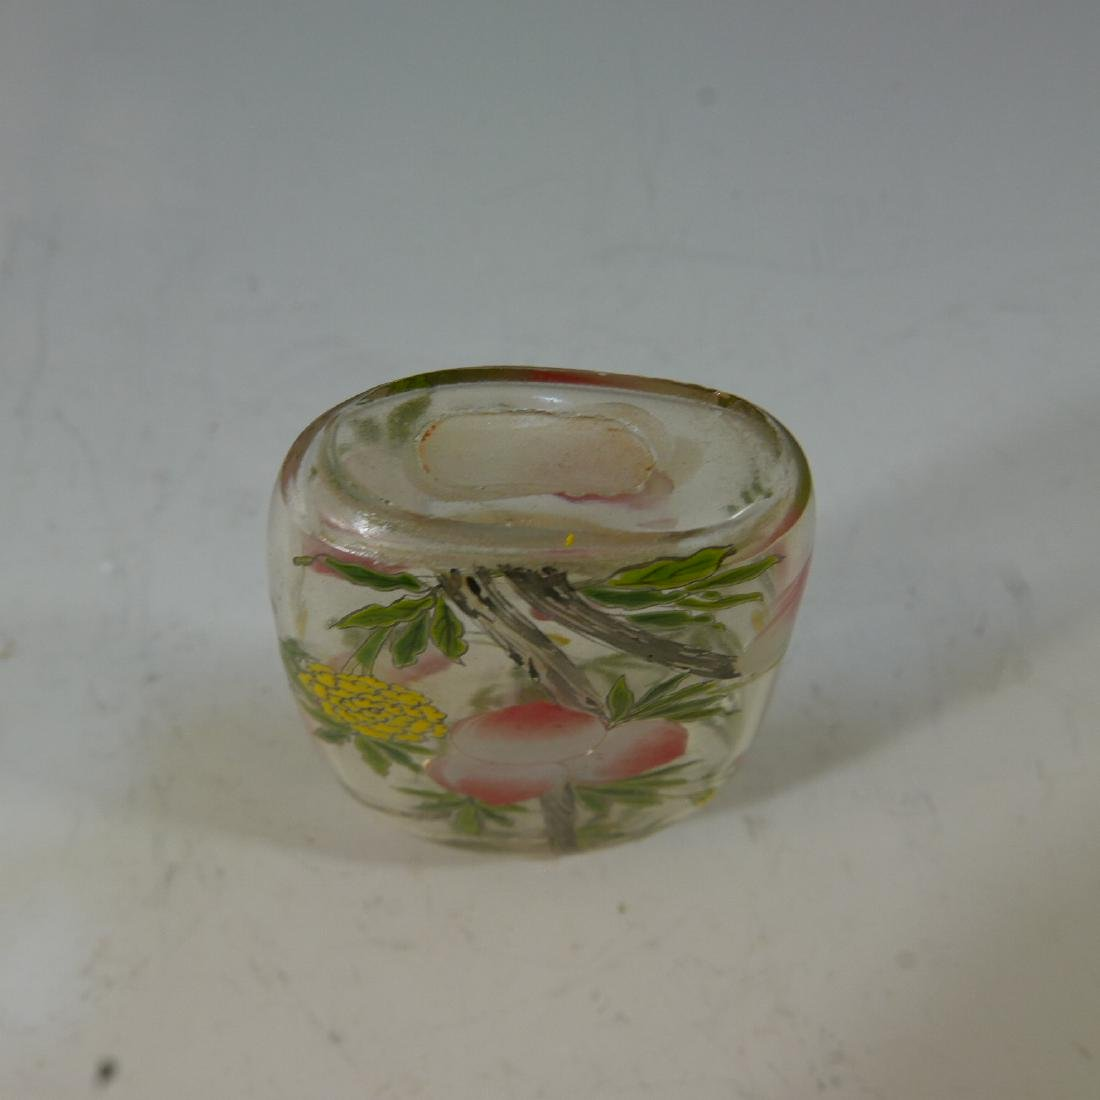 ANTIQUE ROCK CRYSTAL ENAMELED SNUFF BOTTLE - 4